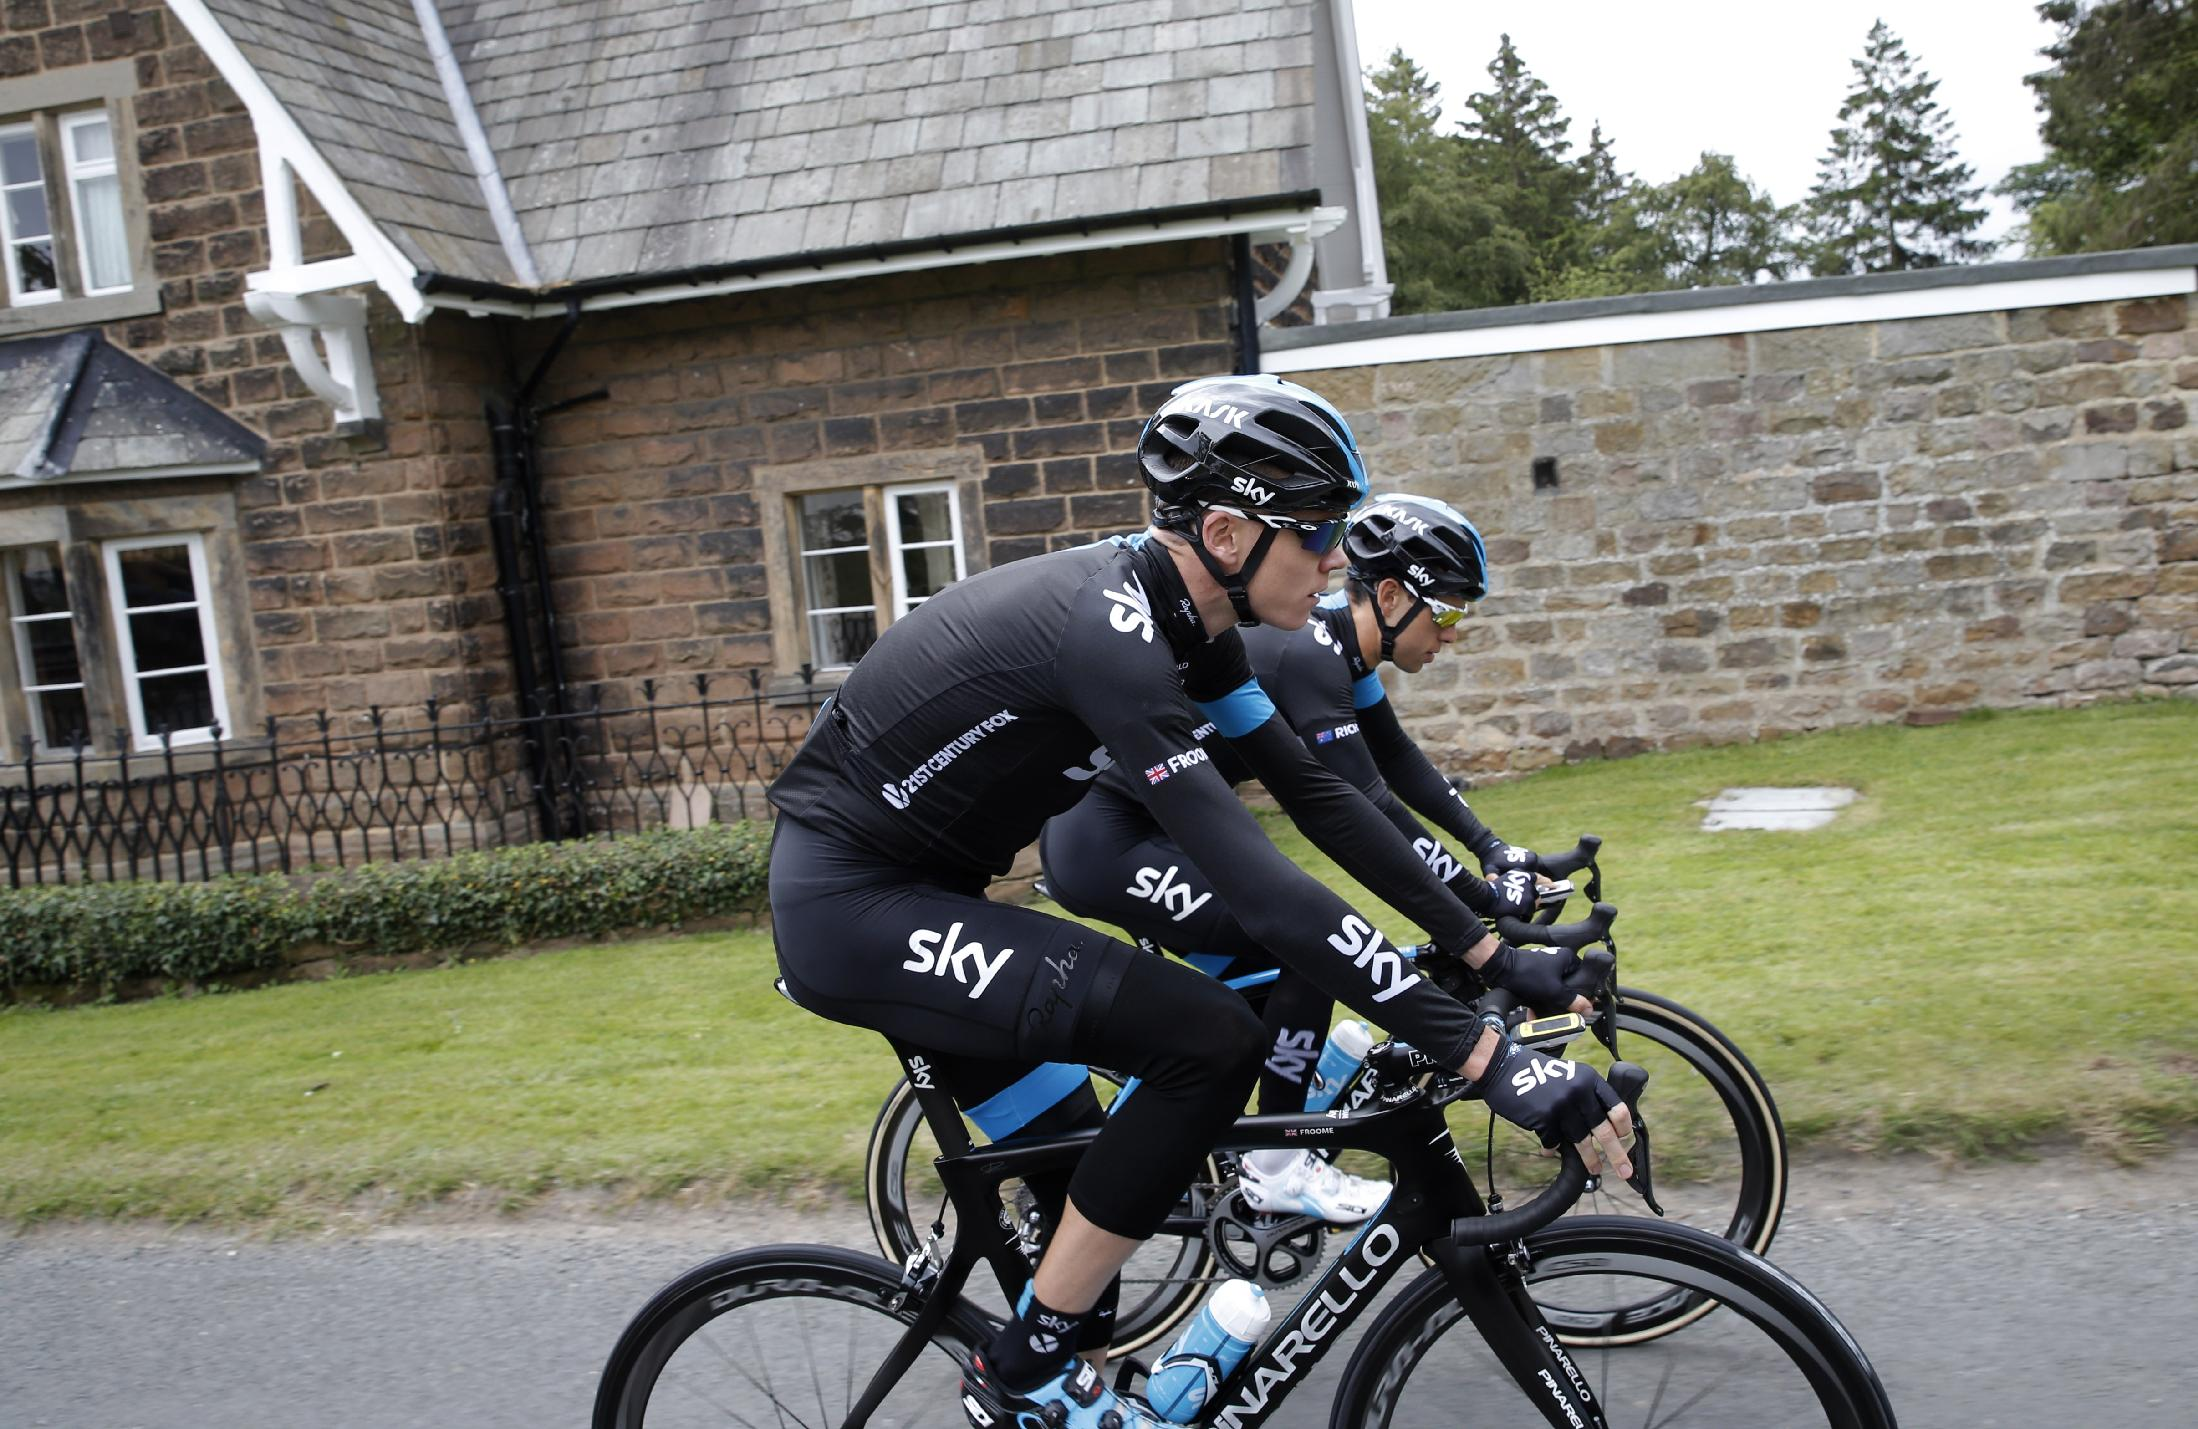 Britain's Christopher Froome, foreground, and his main mountain helper Richie Porte of Australia, rear, ride during a training ahead of the Tour de France cycling race in Leeds, Britain, Thursday, July 3, 2014. The Tour de France will start on Saturday July 5th in Leeds, and finishes in Paris on Sunday July 27th